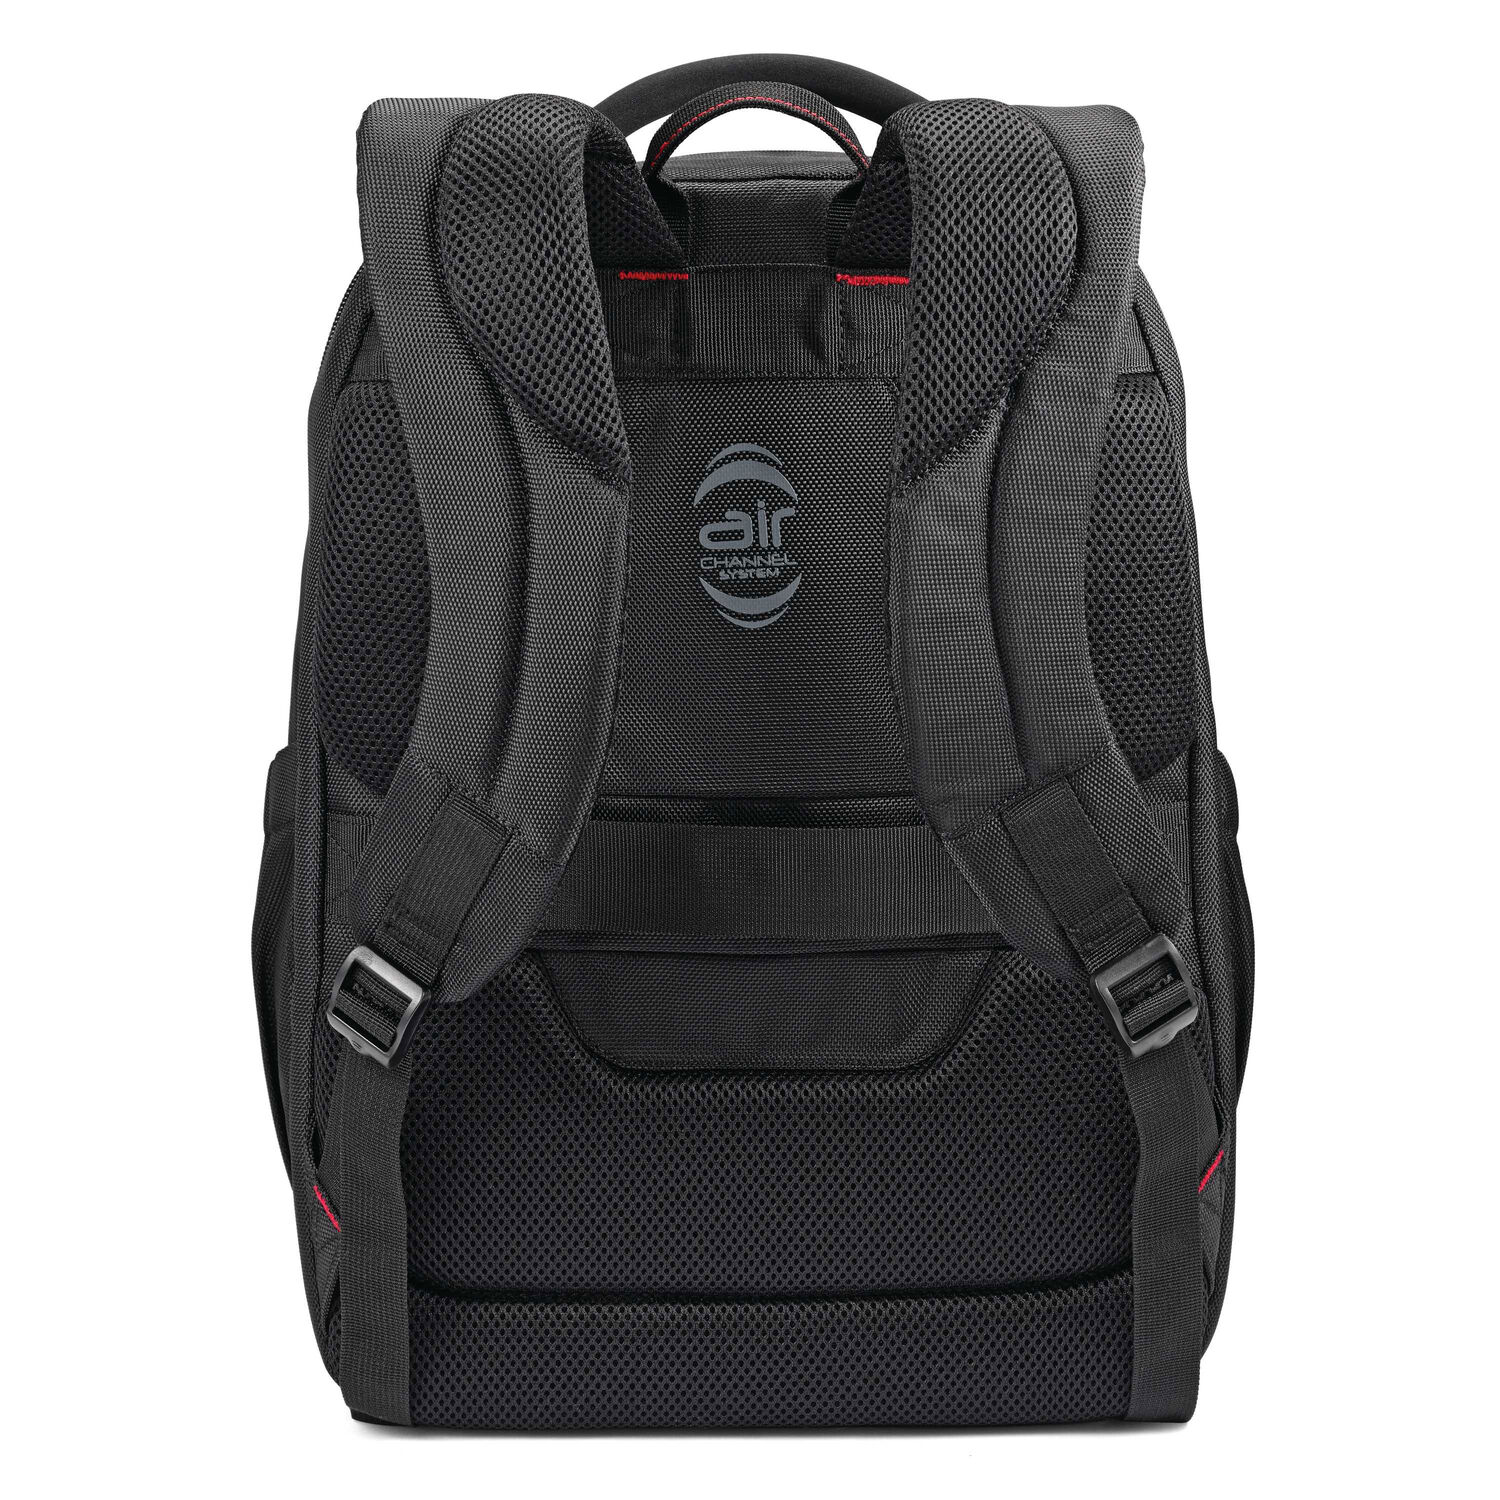 a0754c6fdc1 Samsonite Xenon 3.0 Large Backpack in the color Black.